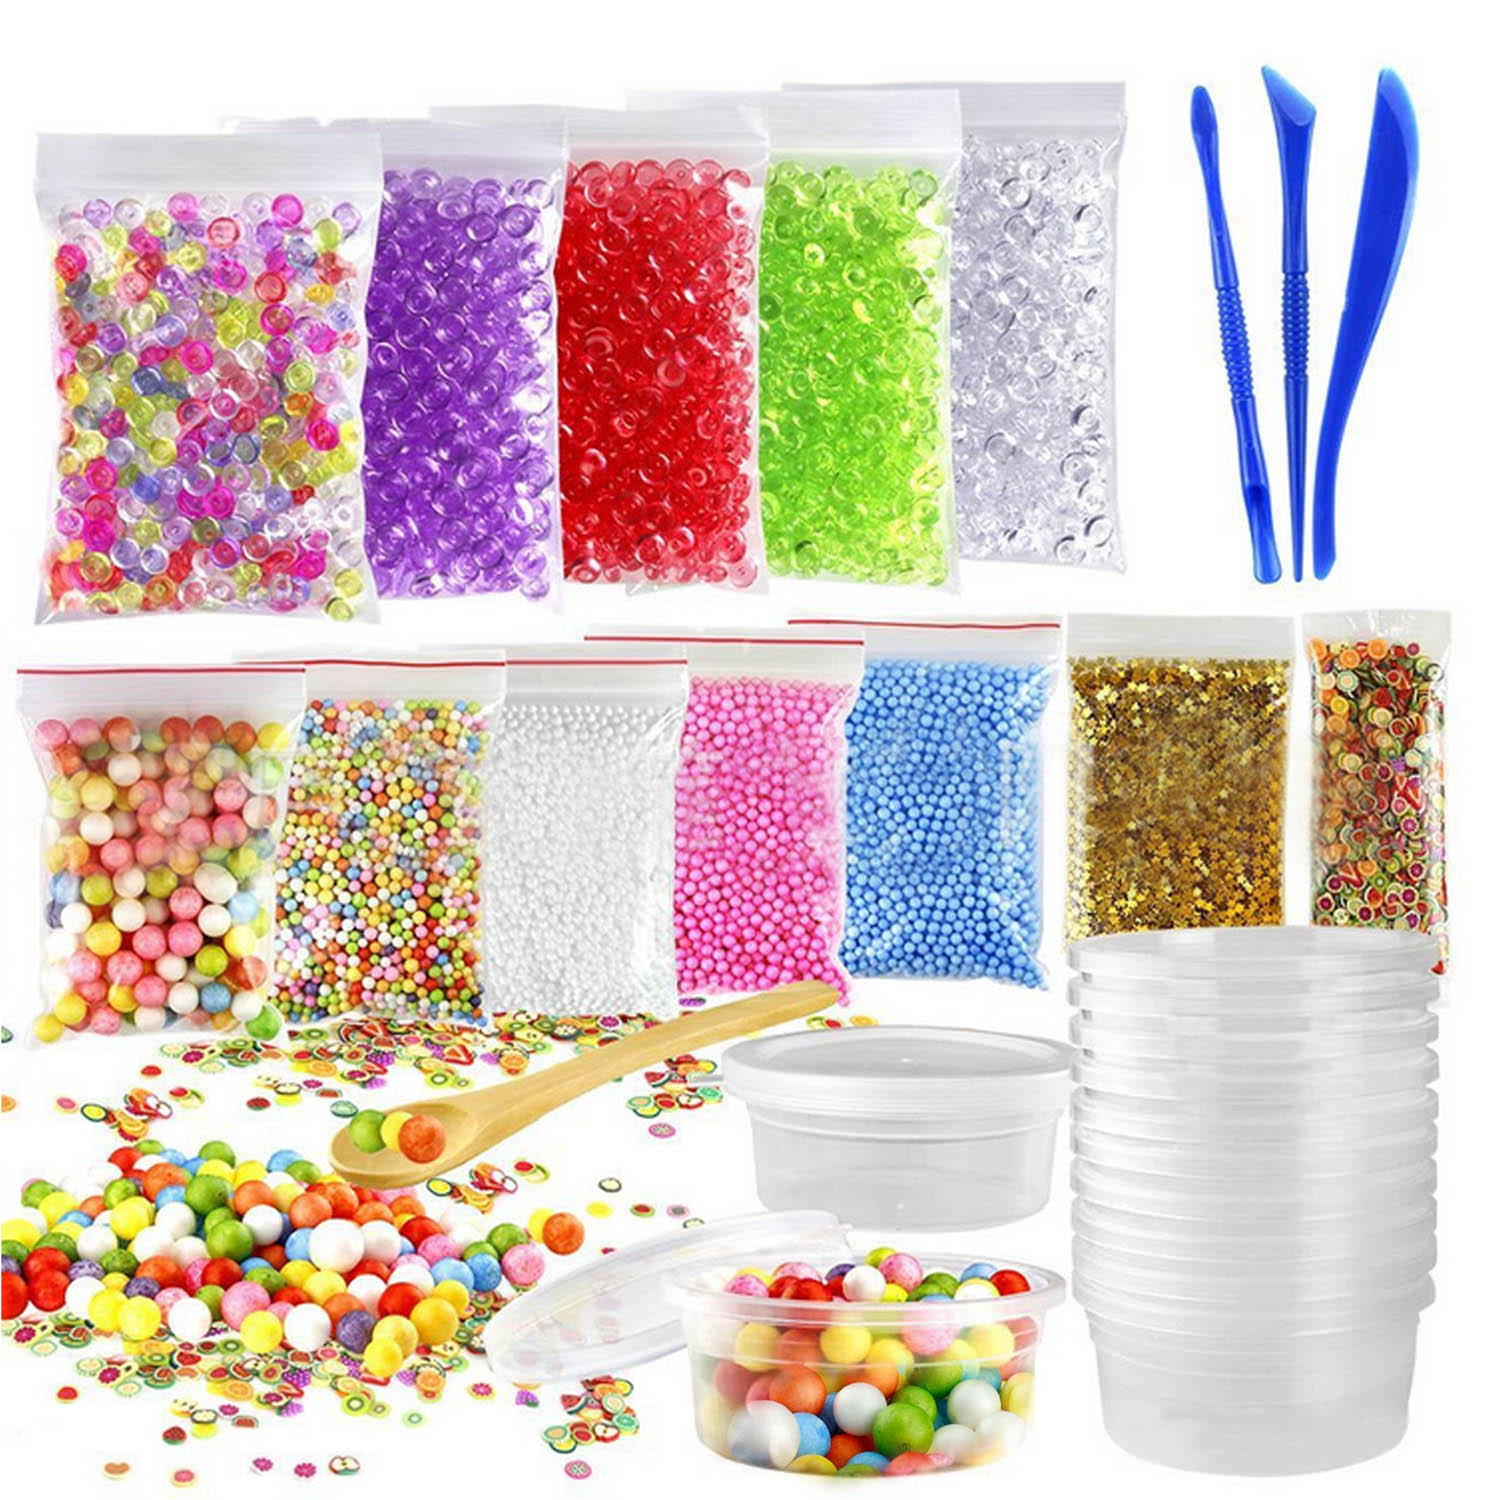 Colorful Mini Beads Foam Balls Fruit Slice Gold Slime Tool Container Kit for Slime DIY C ...